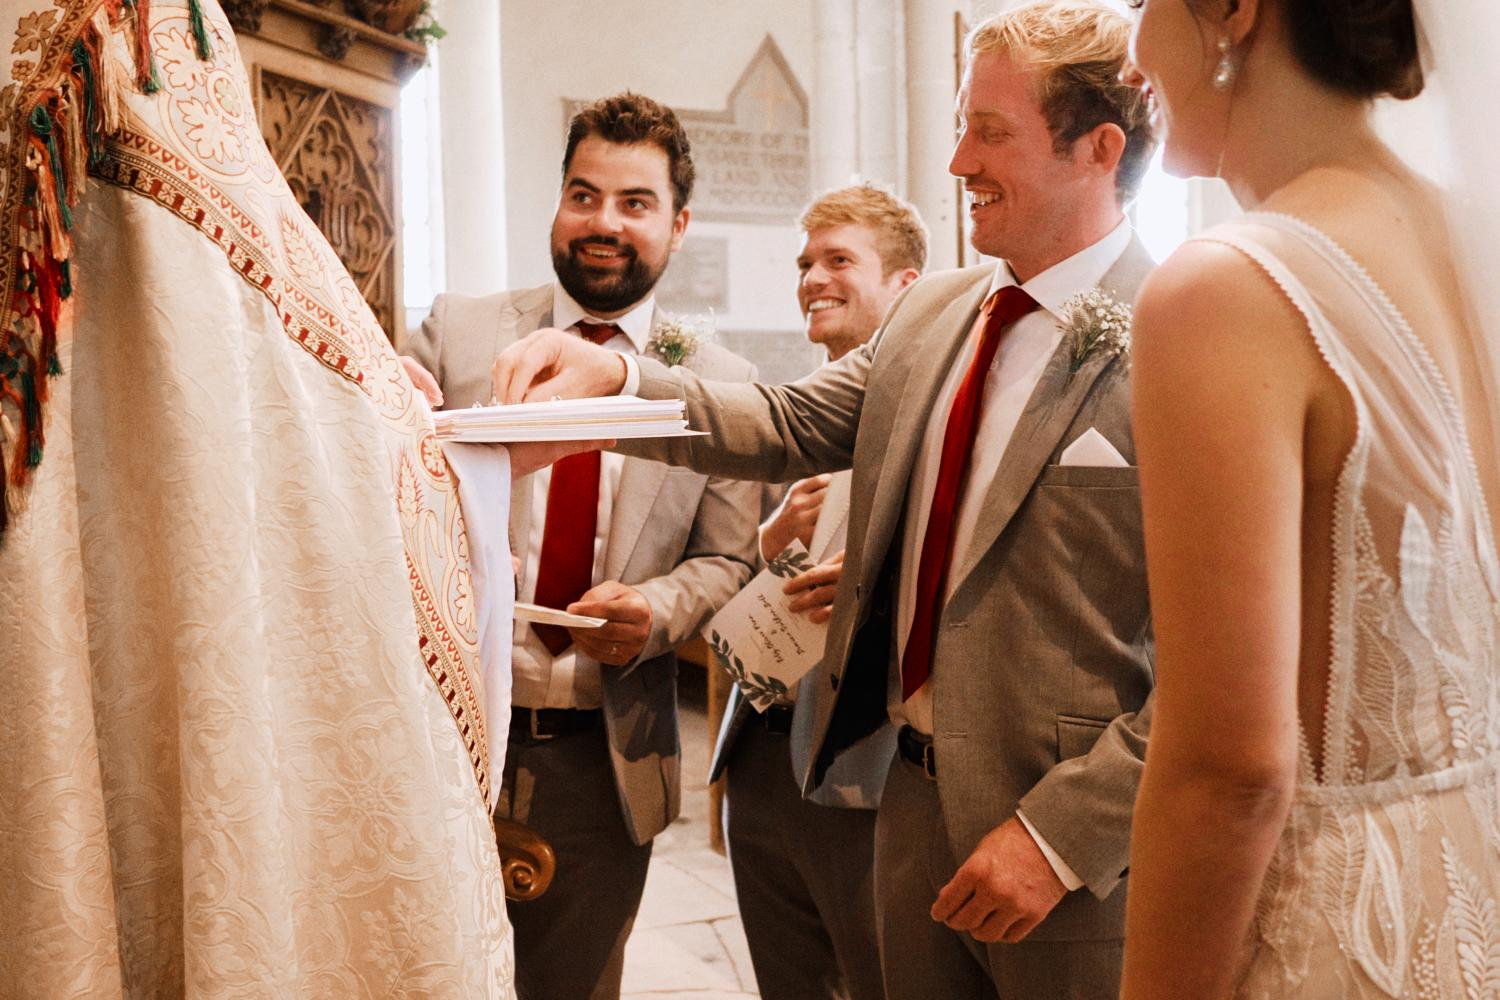 A groom reaches for rings during the vows